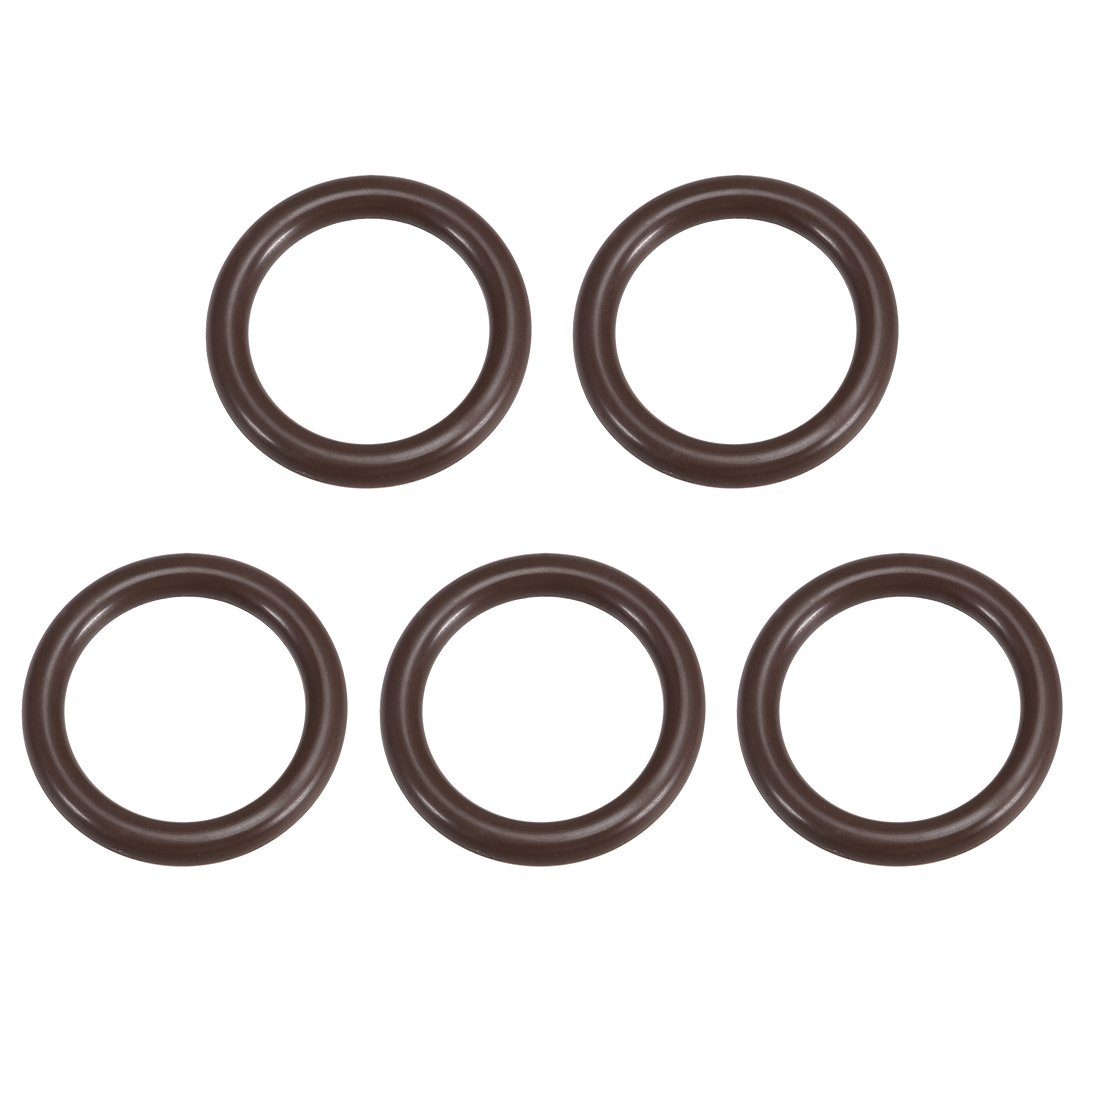 uxcell 5 Pcs Fluororubber Gasket Sanitary Tri Clamp Washer 39mm x 28.4mm O-Ring